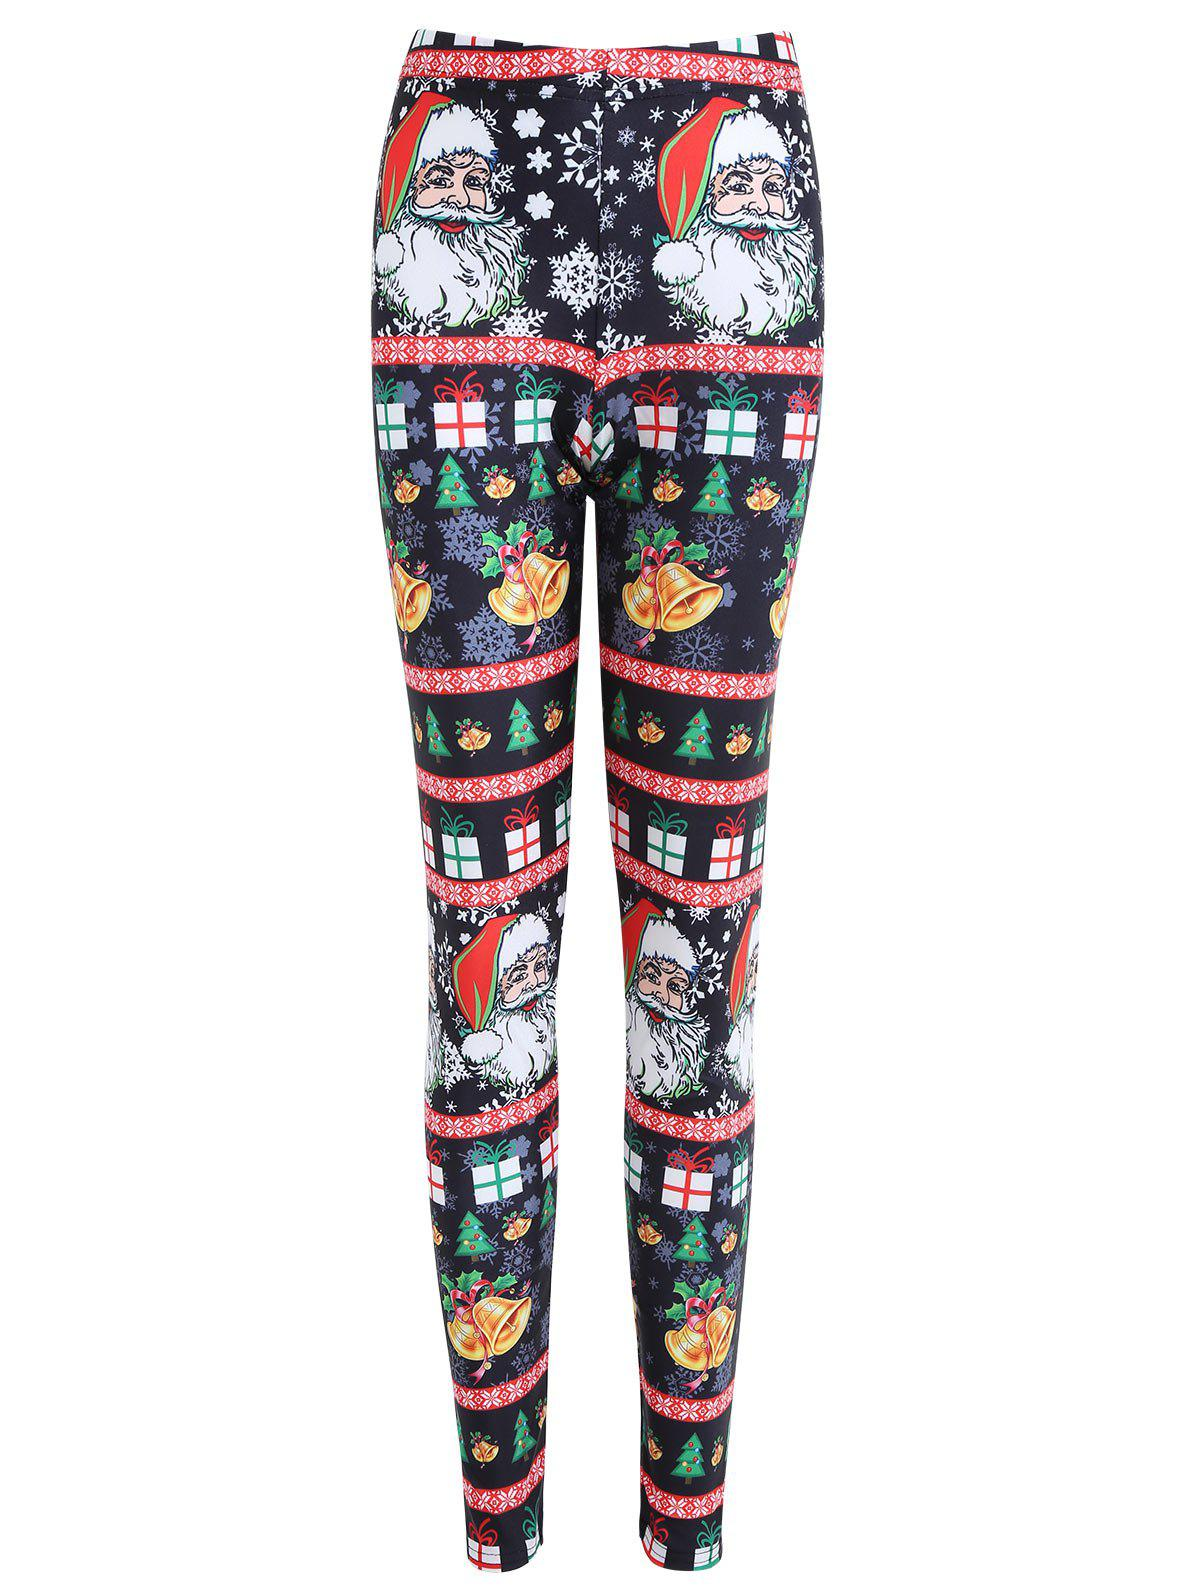 Christmas Bell Santa Claus Print Plus Size LeggingsWOMEN<br><br>Size: 5XL; Color: BLACK; Style: Fashion; Length: Normal; Material: Cotton,Polyester,Spandex; Fit Type: Skinny; Waist Type: High; Closure Type: Elastic Waist; Pattern Type: Print; Pant Style: Pencil Pants; Weight: 0.2100kg; Package Contents: 1 x Leggings;